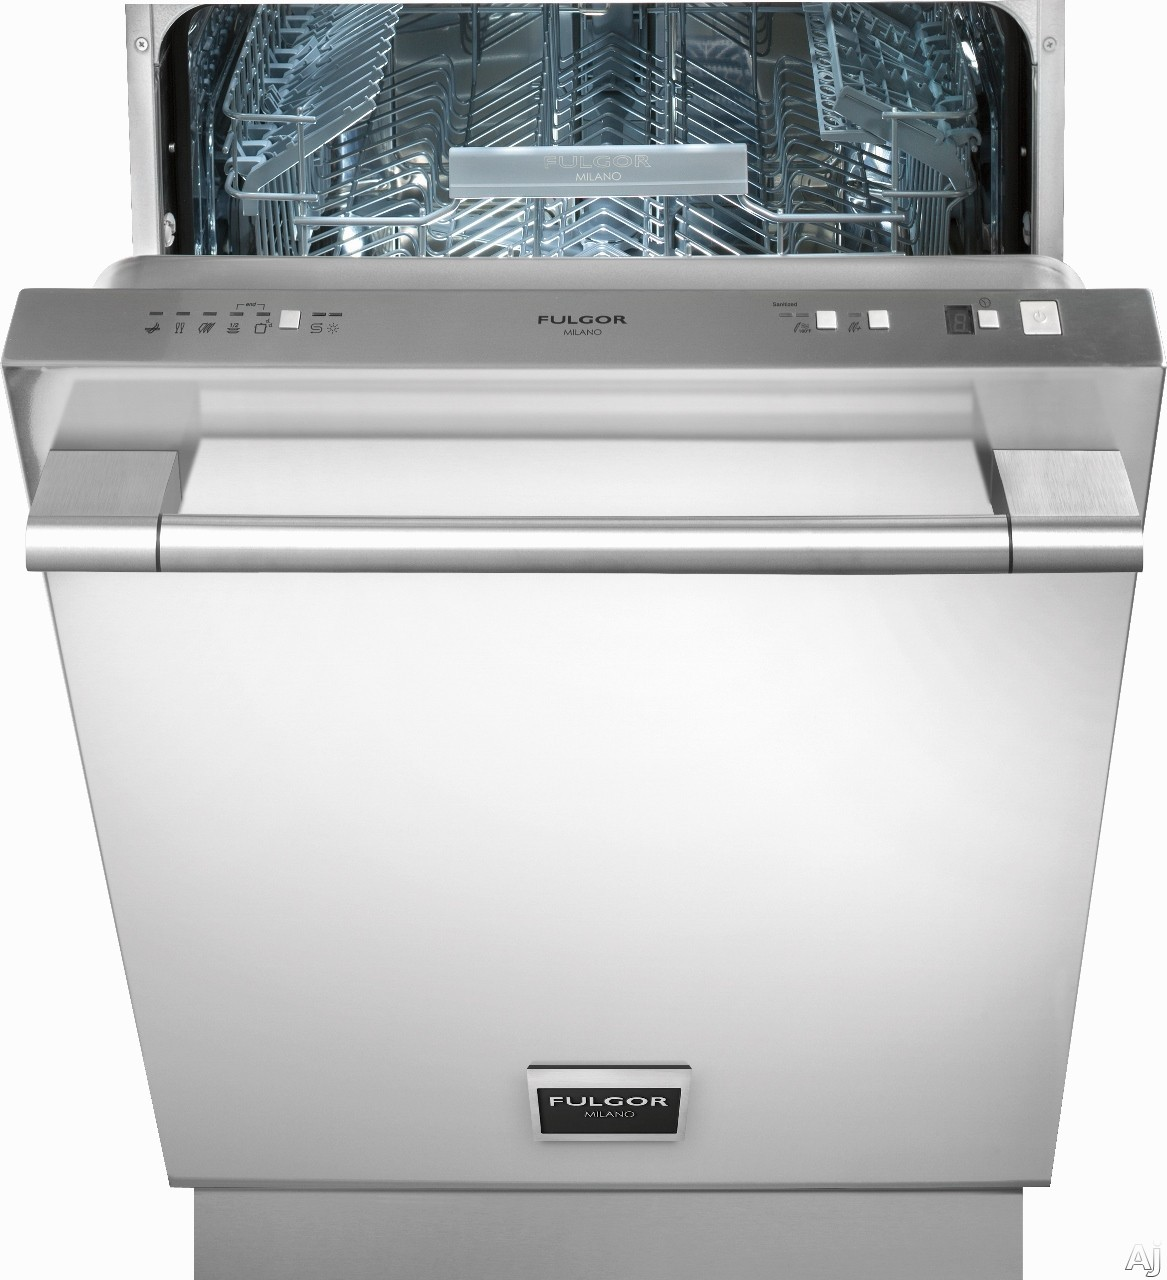 Picture of Fulgor Milano F6DW24 Fully Integrated Dishwasher with 9 Wash Cycles 13 Place Setting Capacity Stainless Steel Tall Tub Adjustable Upper Rack 9-Hour Delay Timer Turbidity Sensor AquaStop Leak Protection and Quiet Plus 50 dB Performance